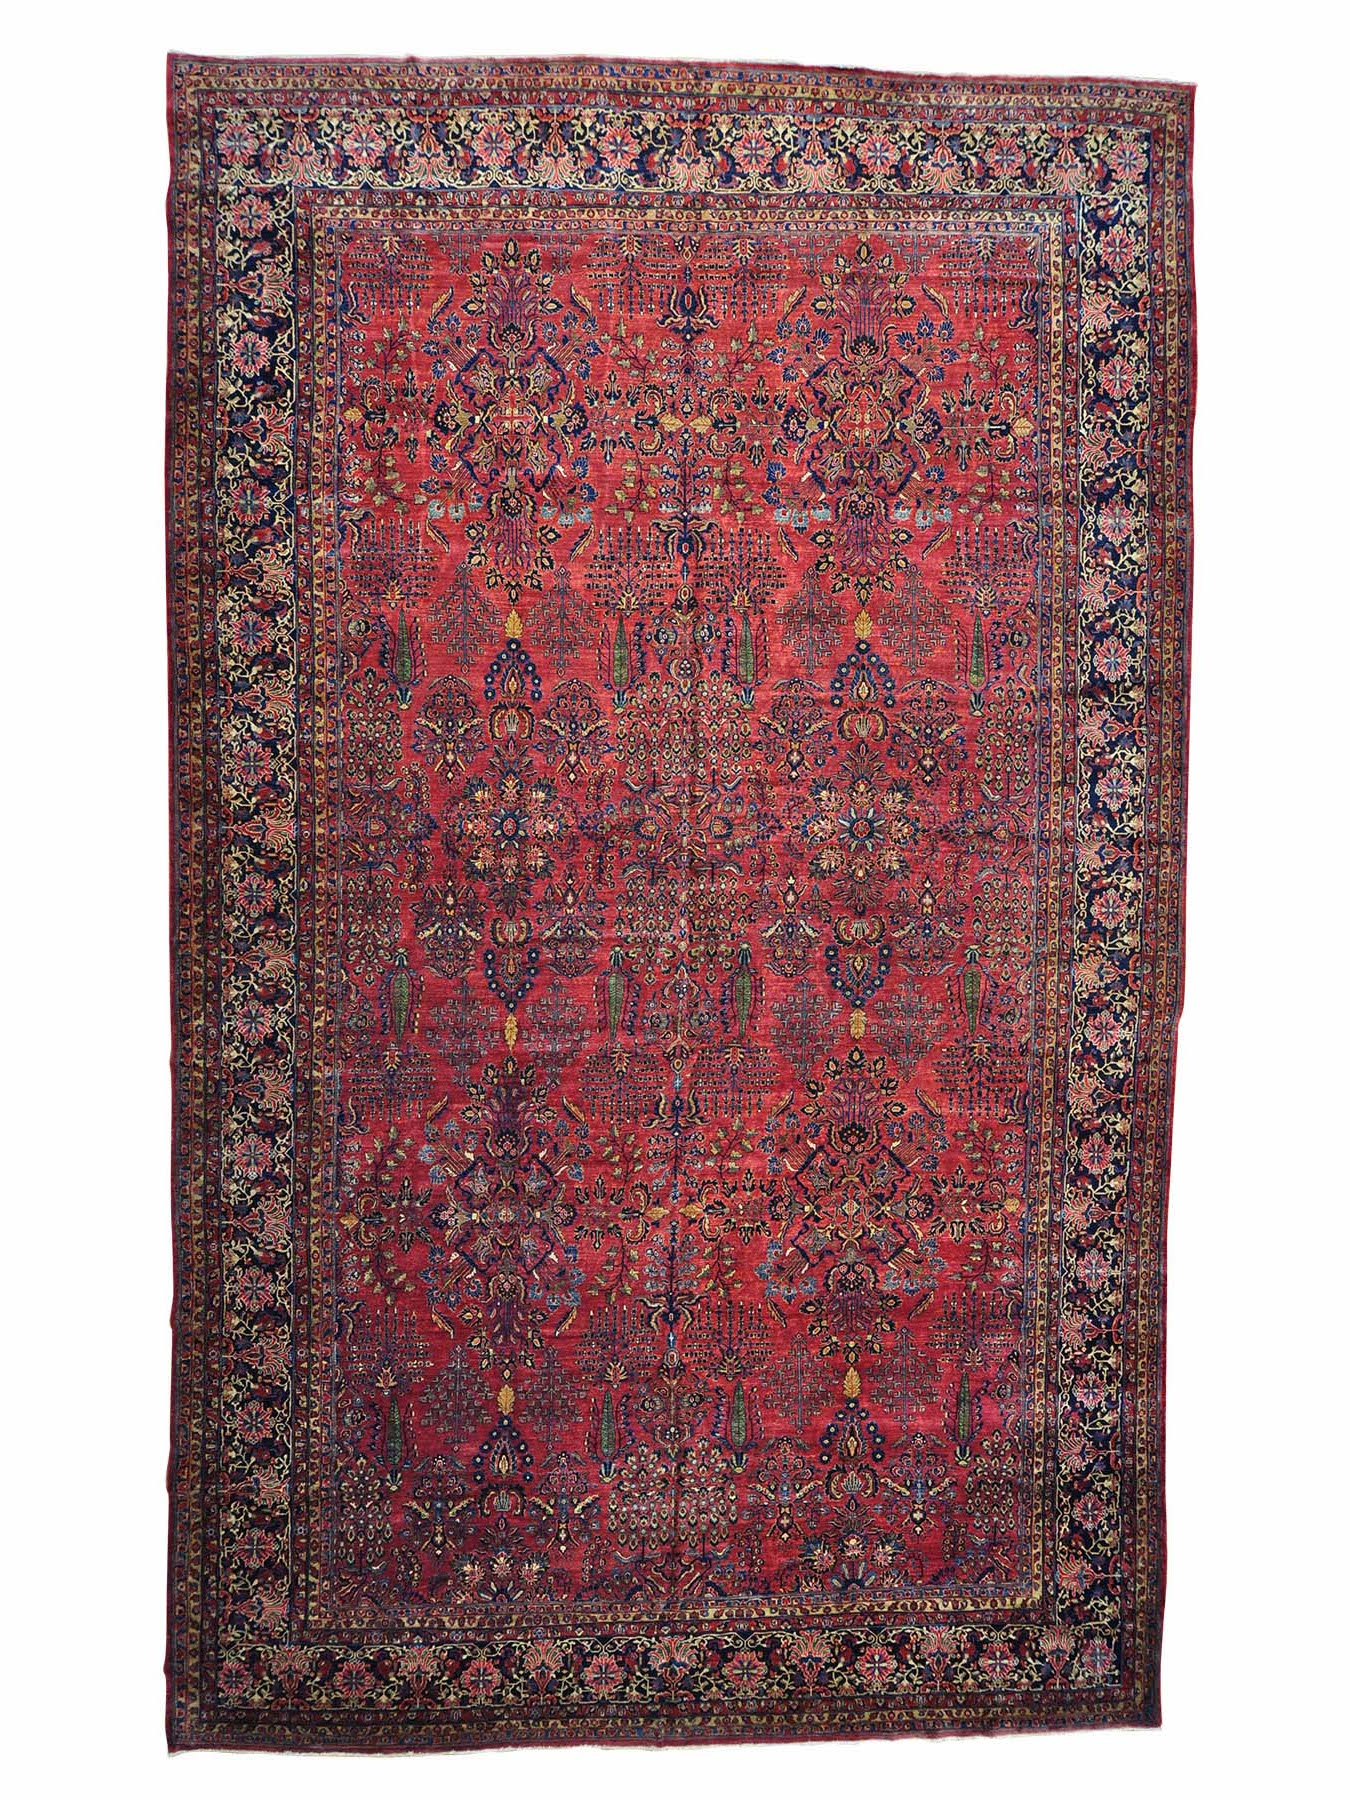 antique persian carpets in new york